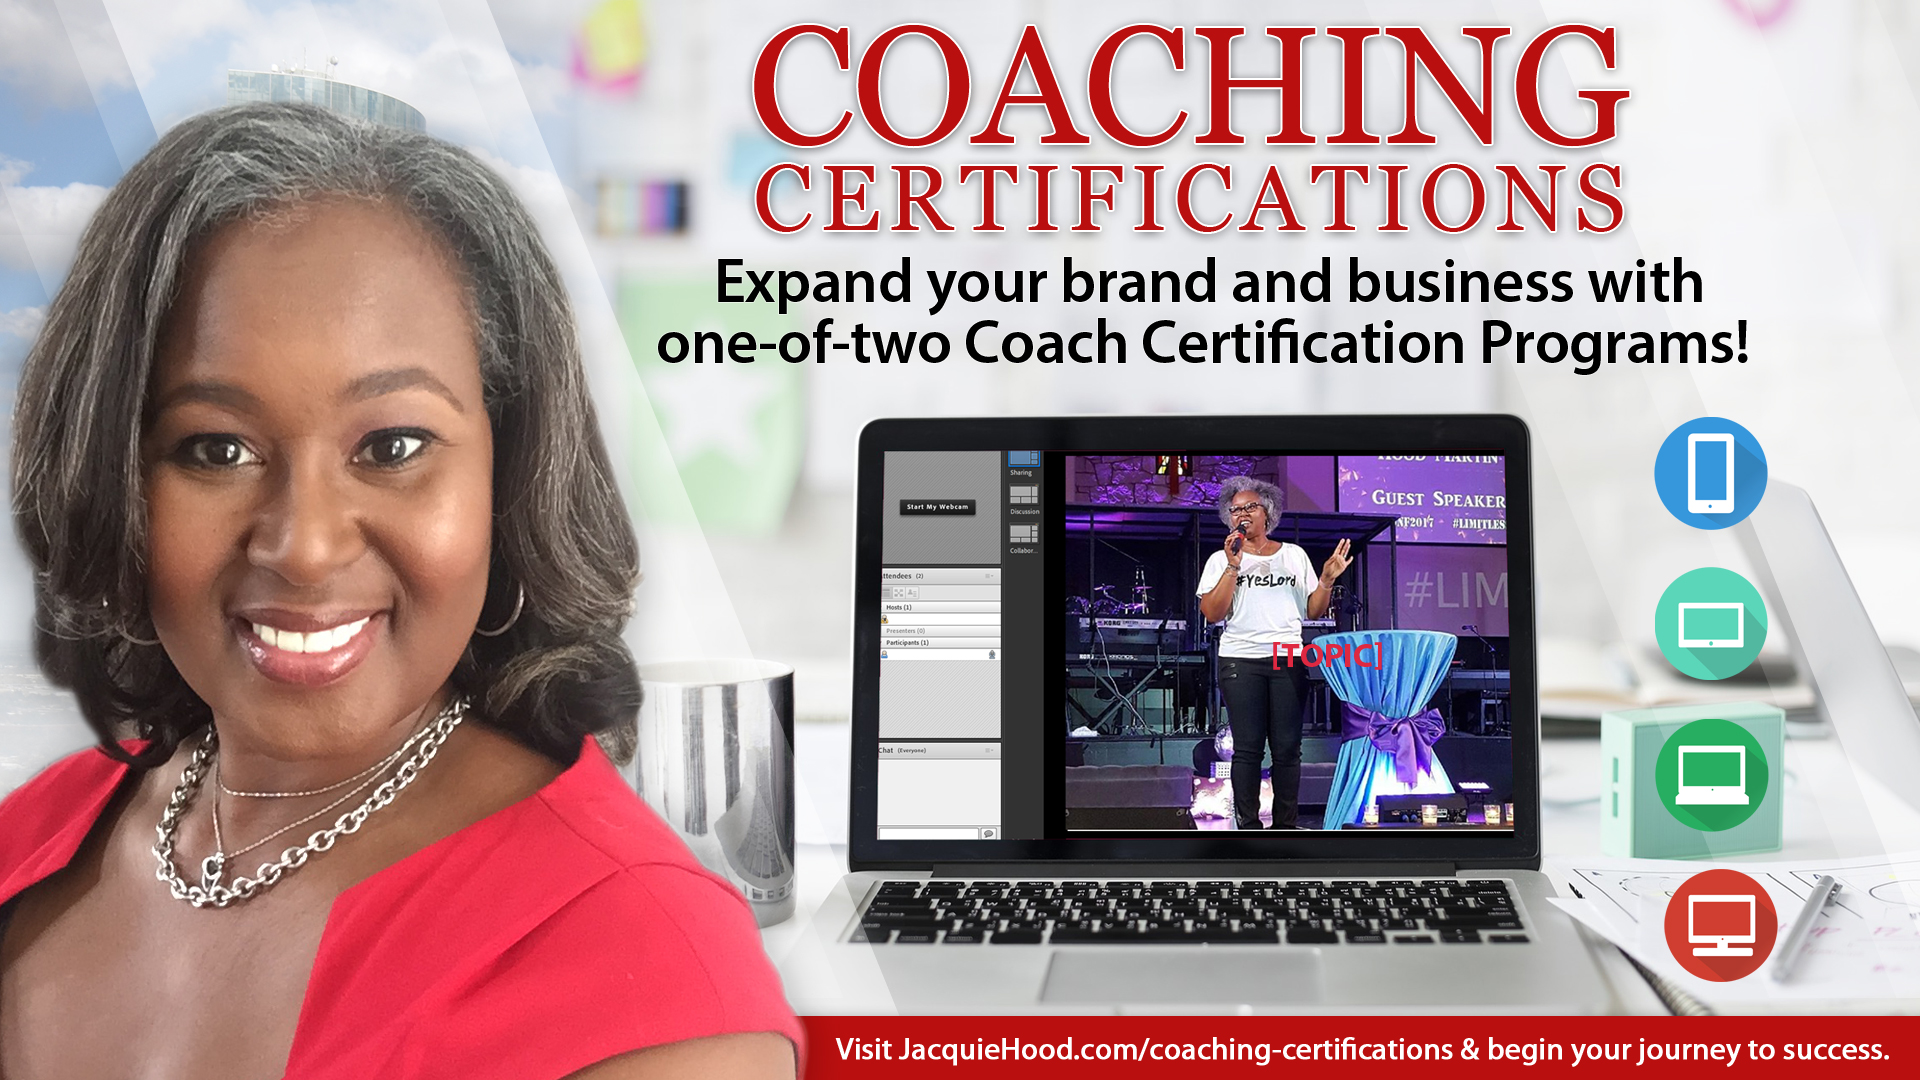 SuccessInTheCItySeries_CoachingCertifications1920x1080